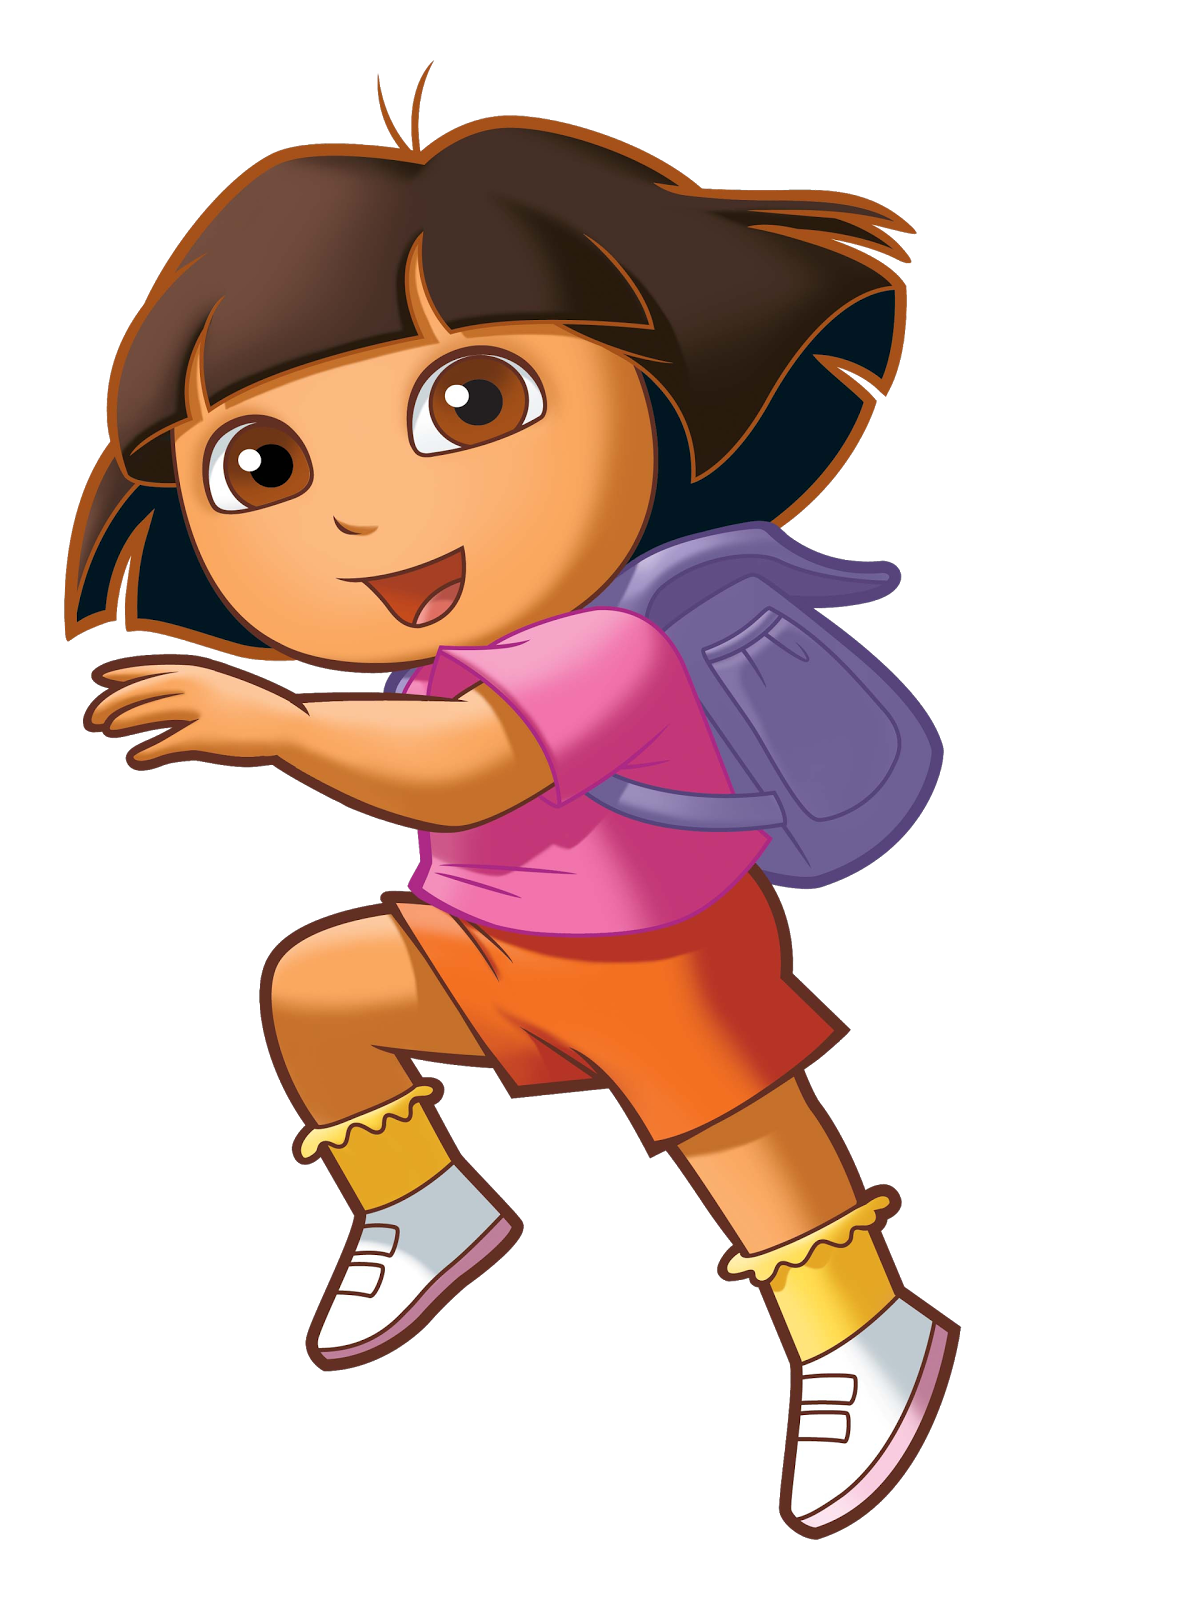 3 Cartoon Character Images : Cartoon characters dora la exploradora png